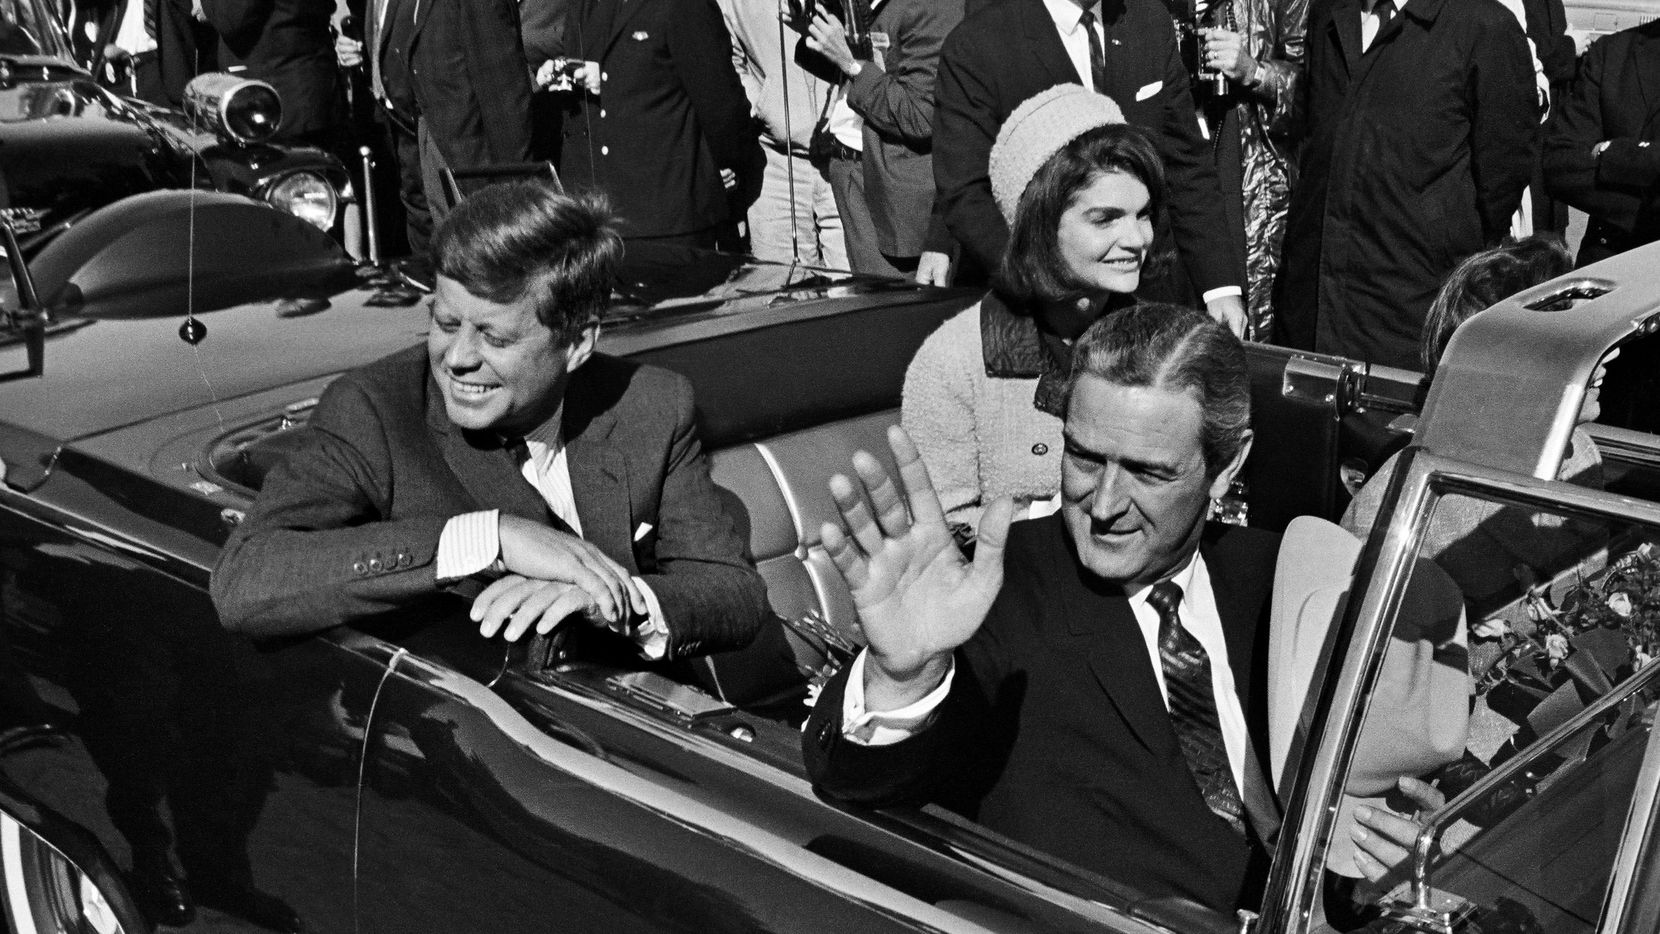 Pres. John F. Kennedy, Jacqueline Kennedy, and Texas Gov. John Connally wave as their motorcade departs Love Field to head to downtown Dallas on Nov. 22, 1963.